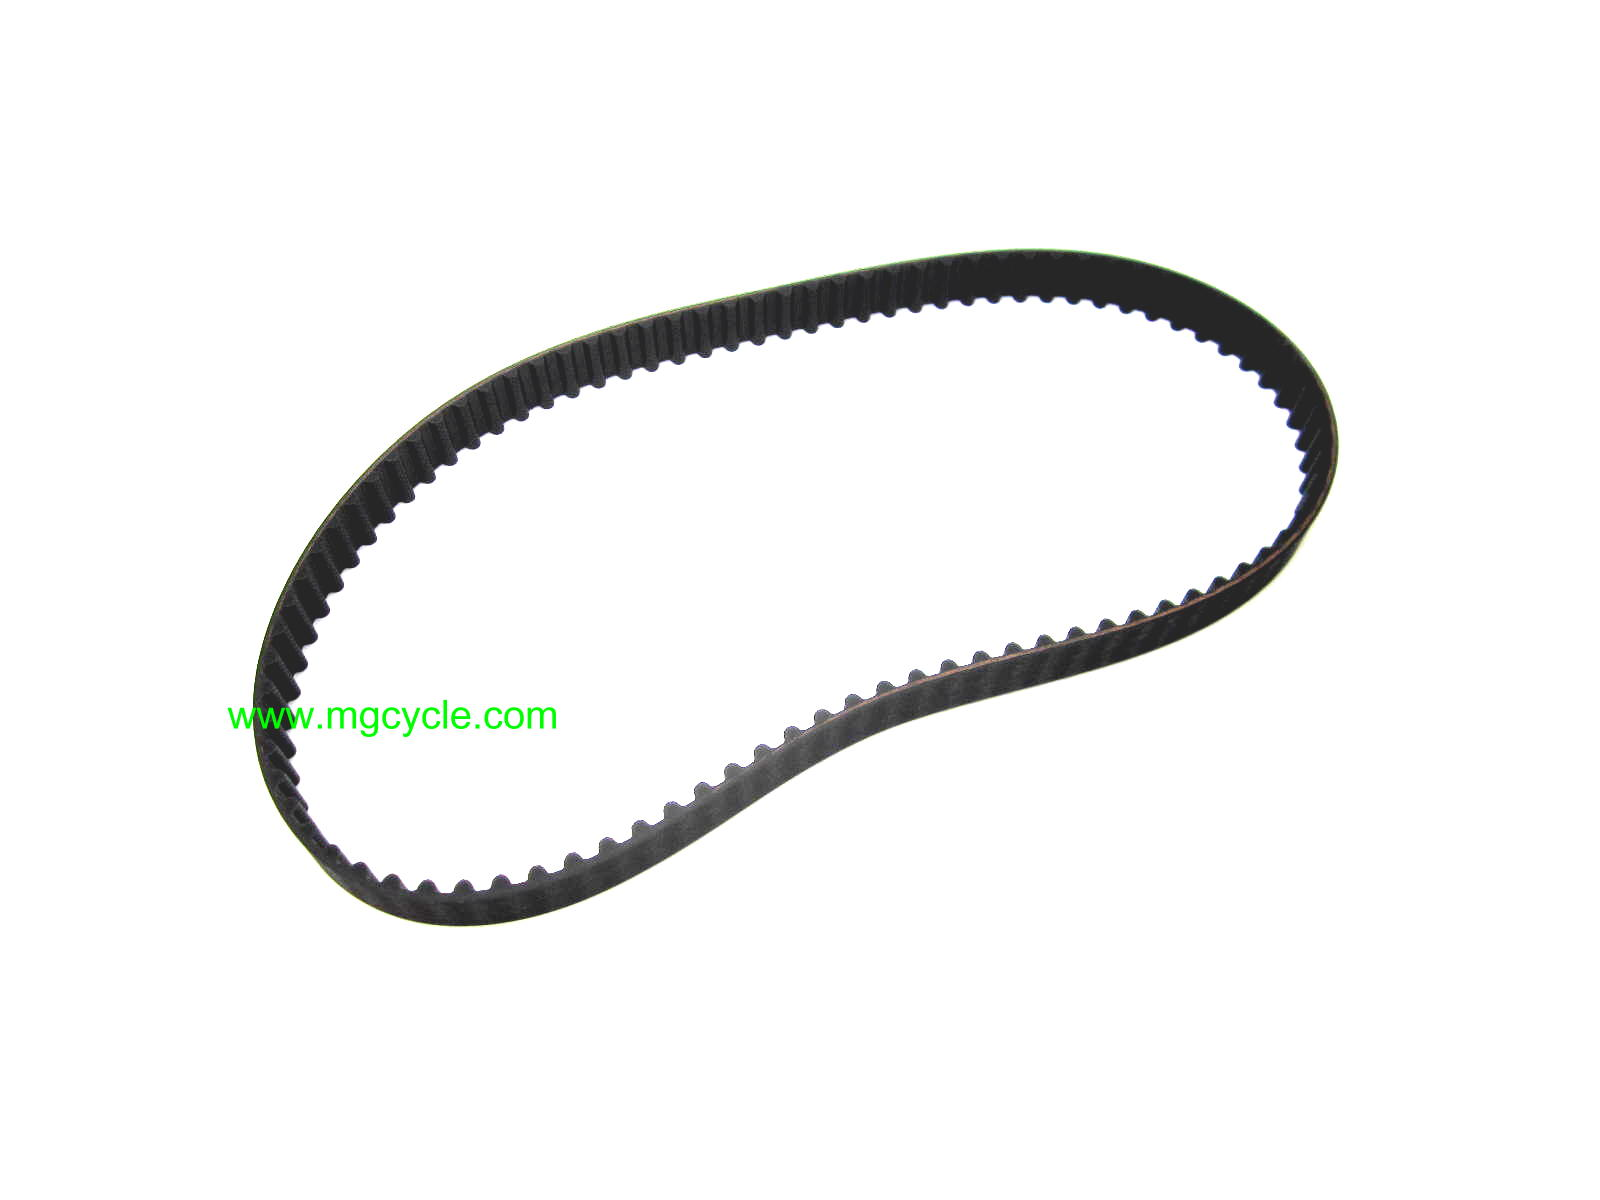 cam belt for Ducati 4V 749,998,99, Monster S4R/S 73740125A